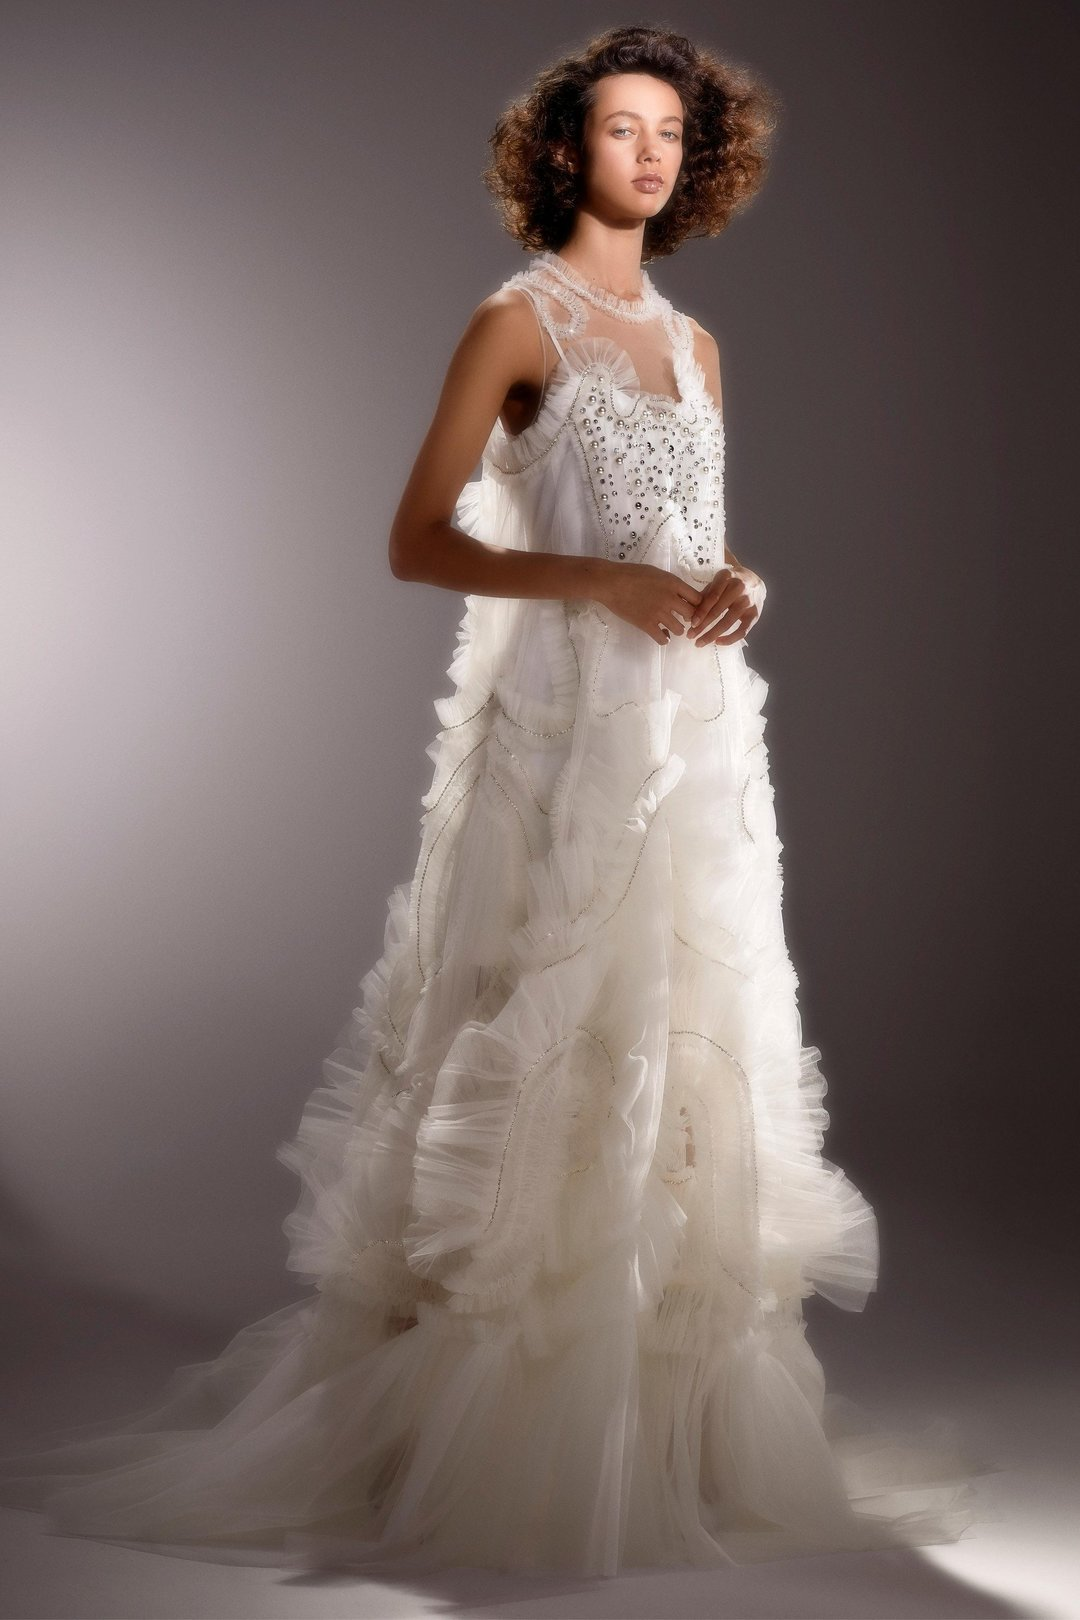 immaculate tulle swirl gown  dress photo